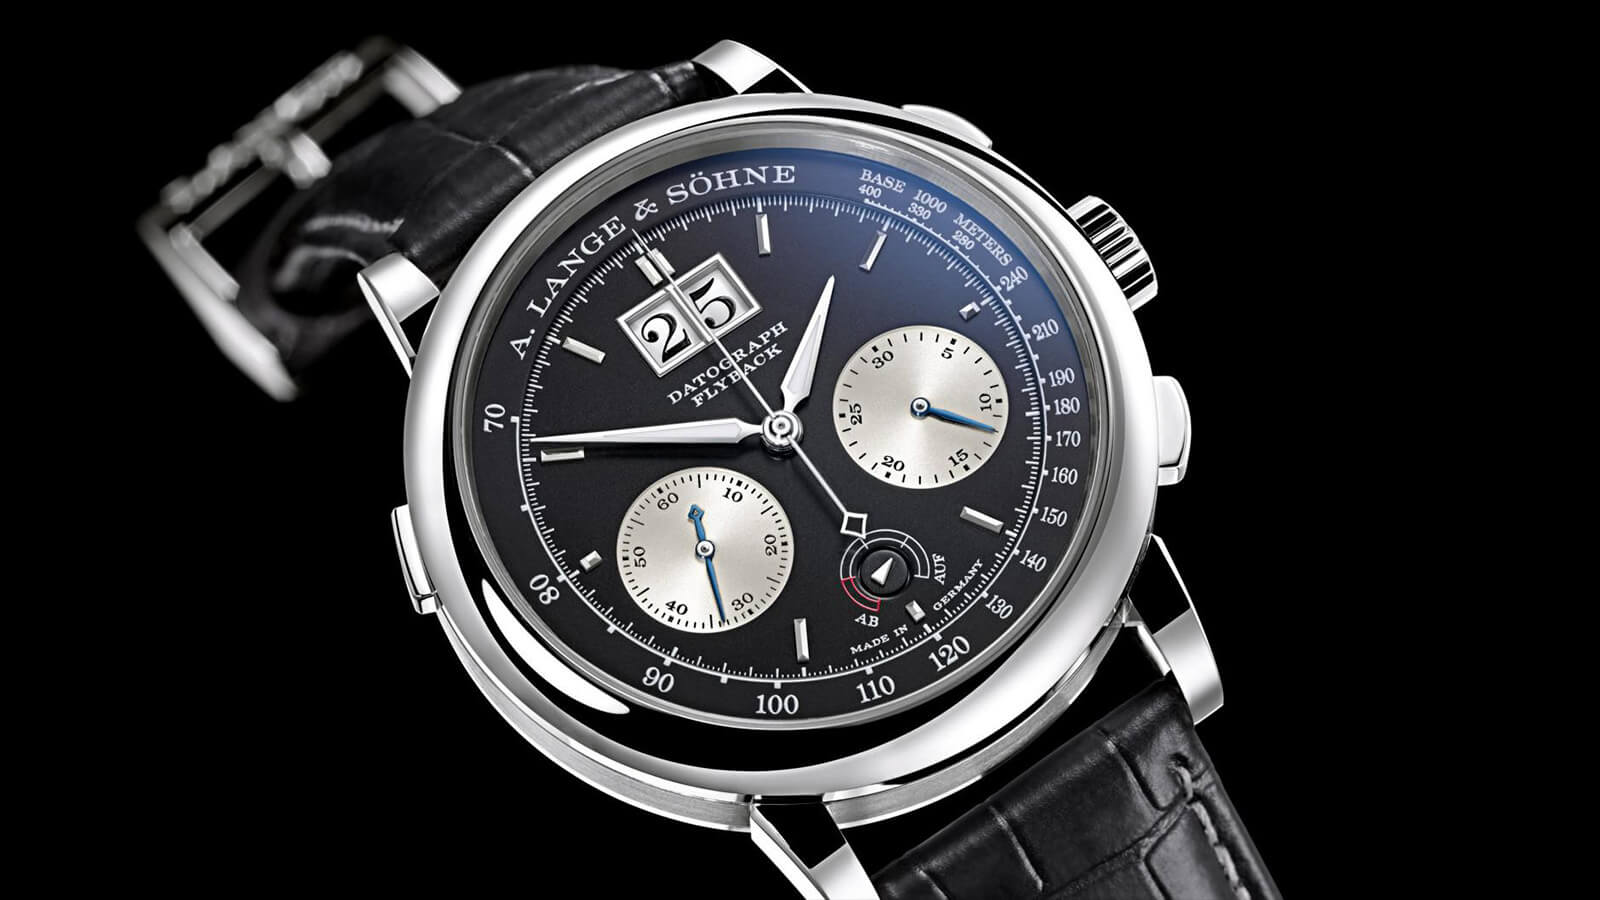 The Art of Design: The A. Lange & Söhne Datograph